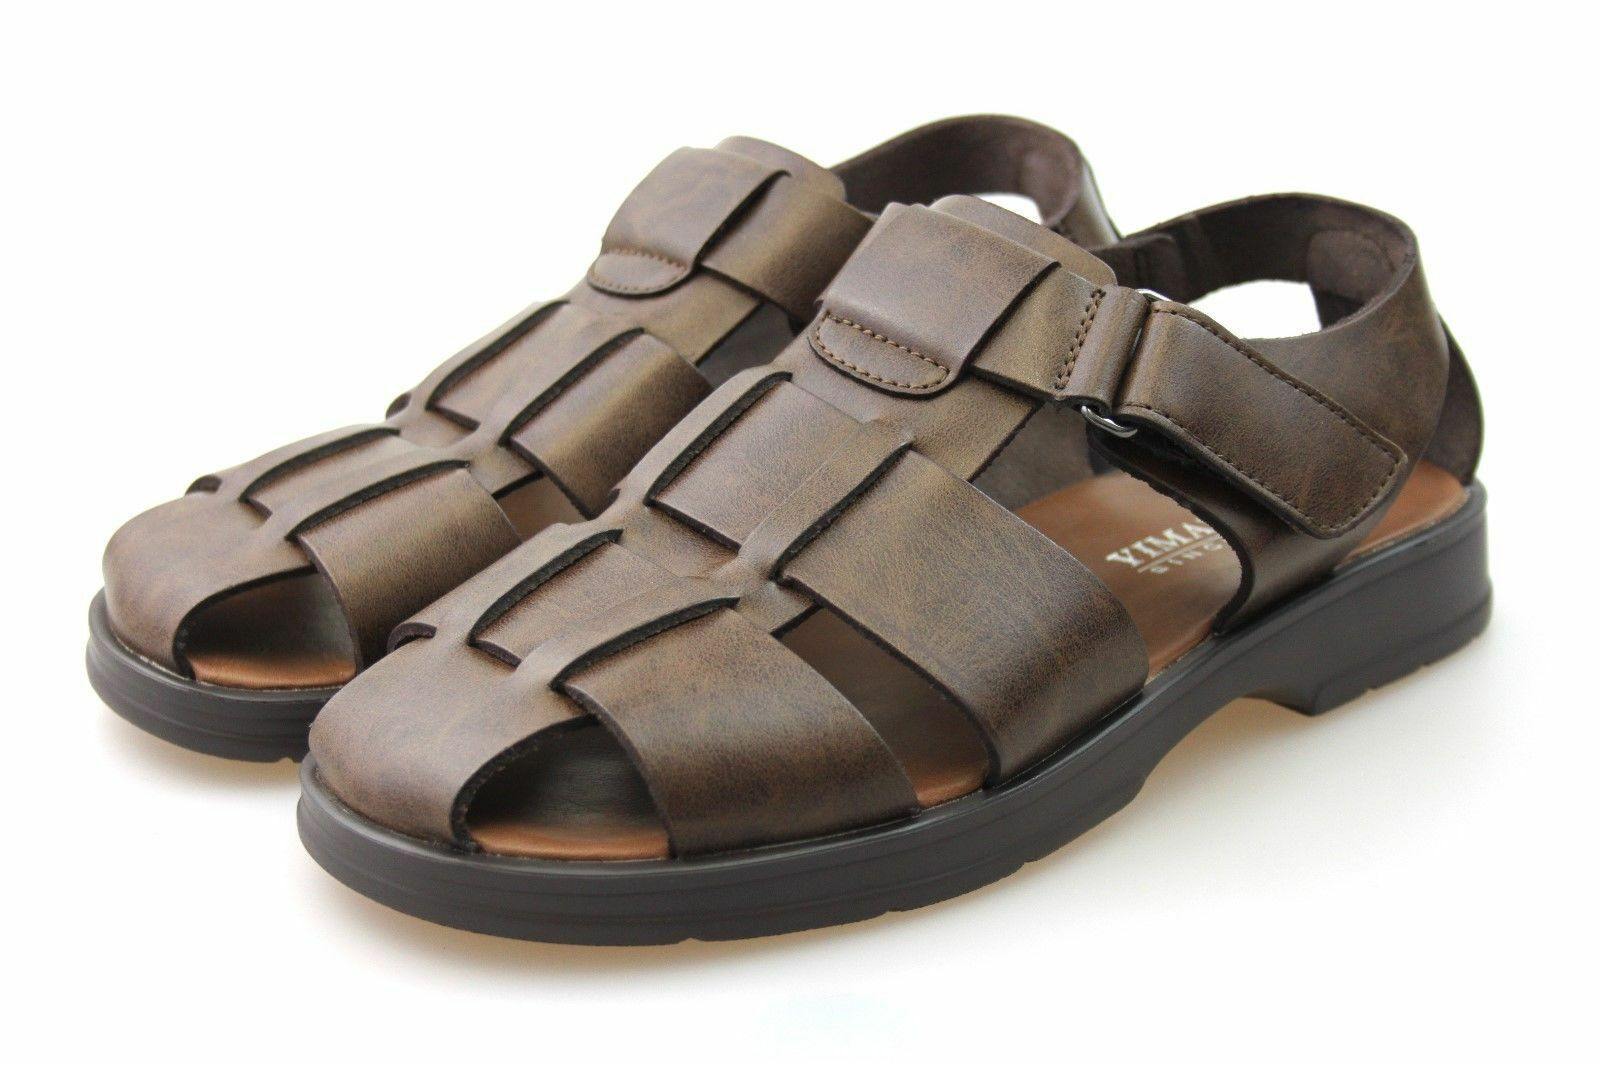 Mens Brown Leather Sandals Shoe Walking Summer Beach Shoe Sandals Size 5a659b